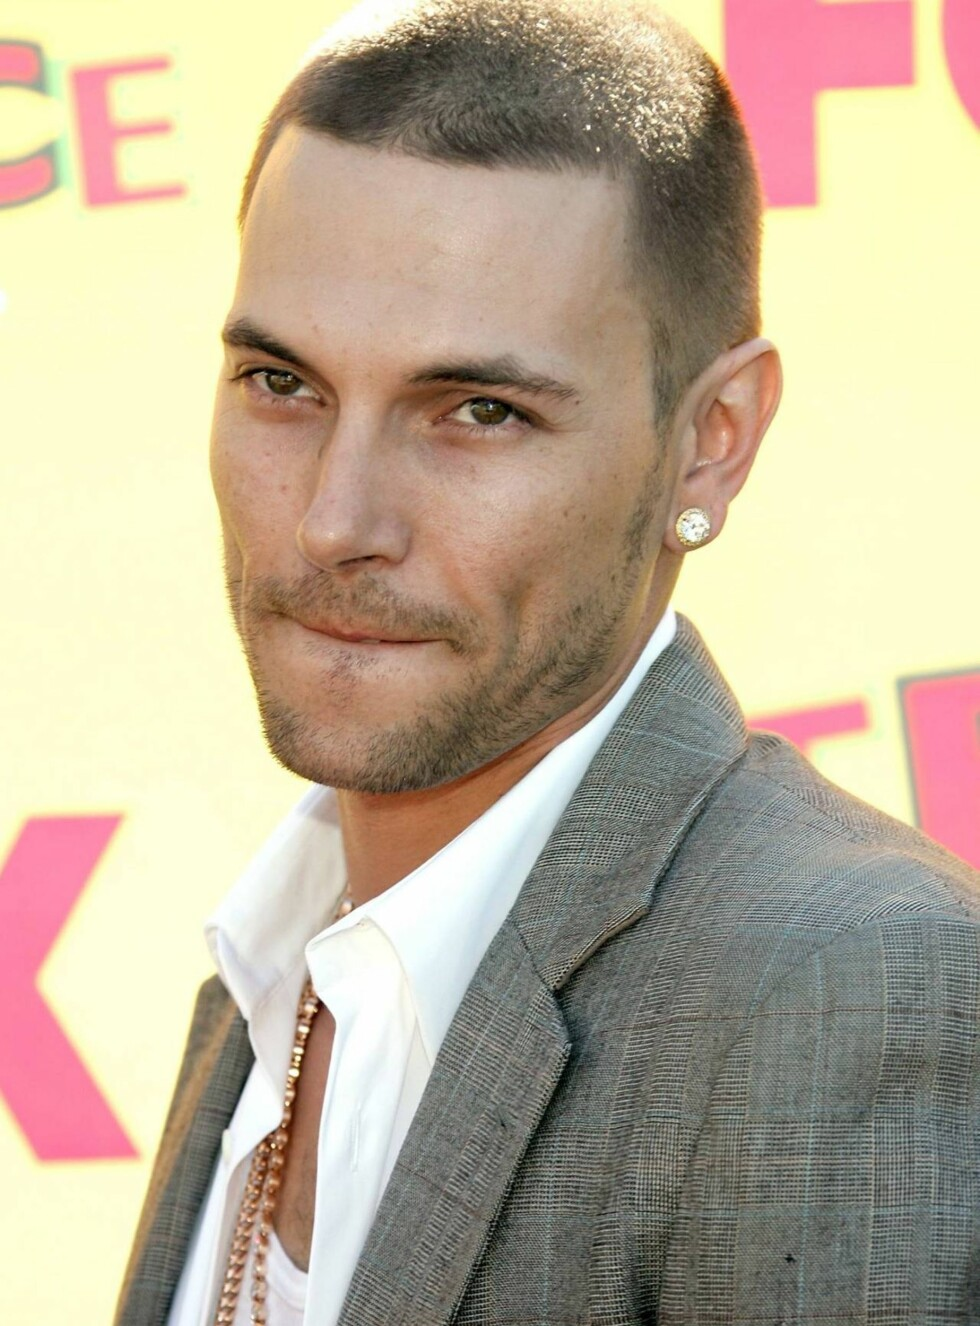 UNIVERSAL CITY, CA - AUGUST 20:  Singer Kevin Federline arrives at the 8th Annual Teen Choice Awards at the Gibson Amphitheatre on August 20, 2006 in Universal City, California.  (Photo by Frazer Harrison/Getty Images) *** Local Caption *** Kevin Federlin Foto: All Over Press